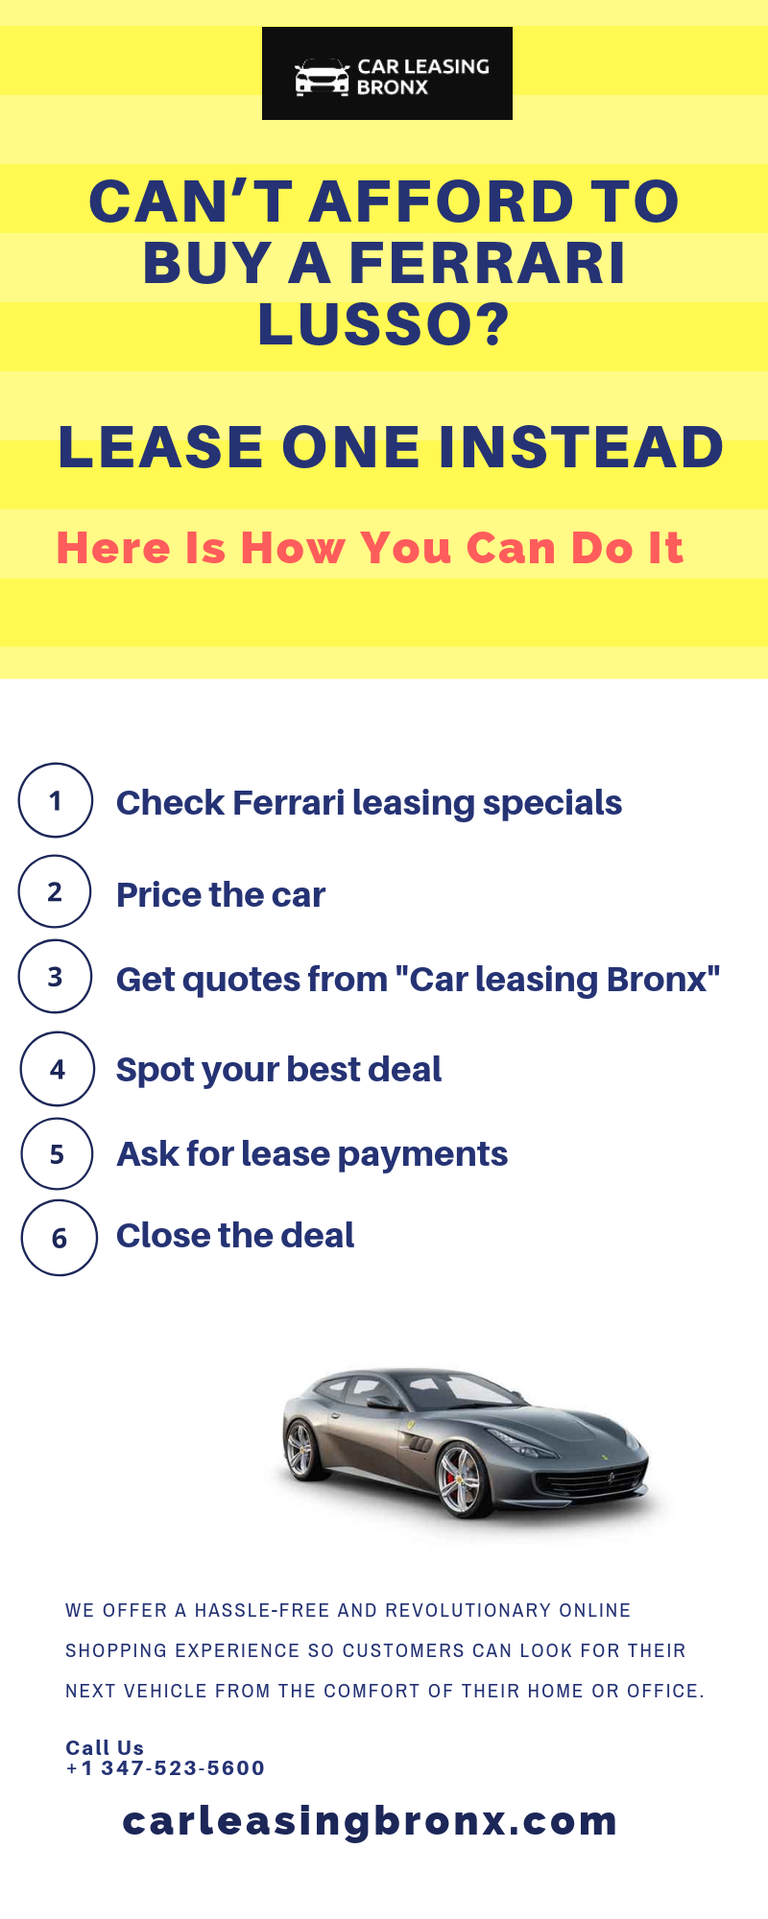 Car Leasing Bronx